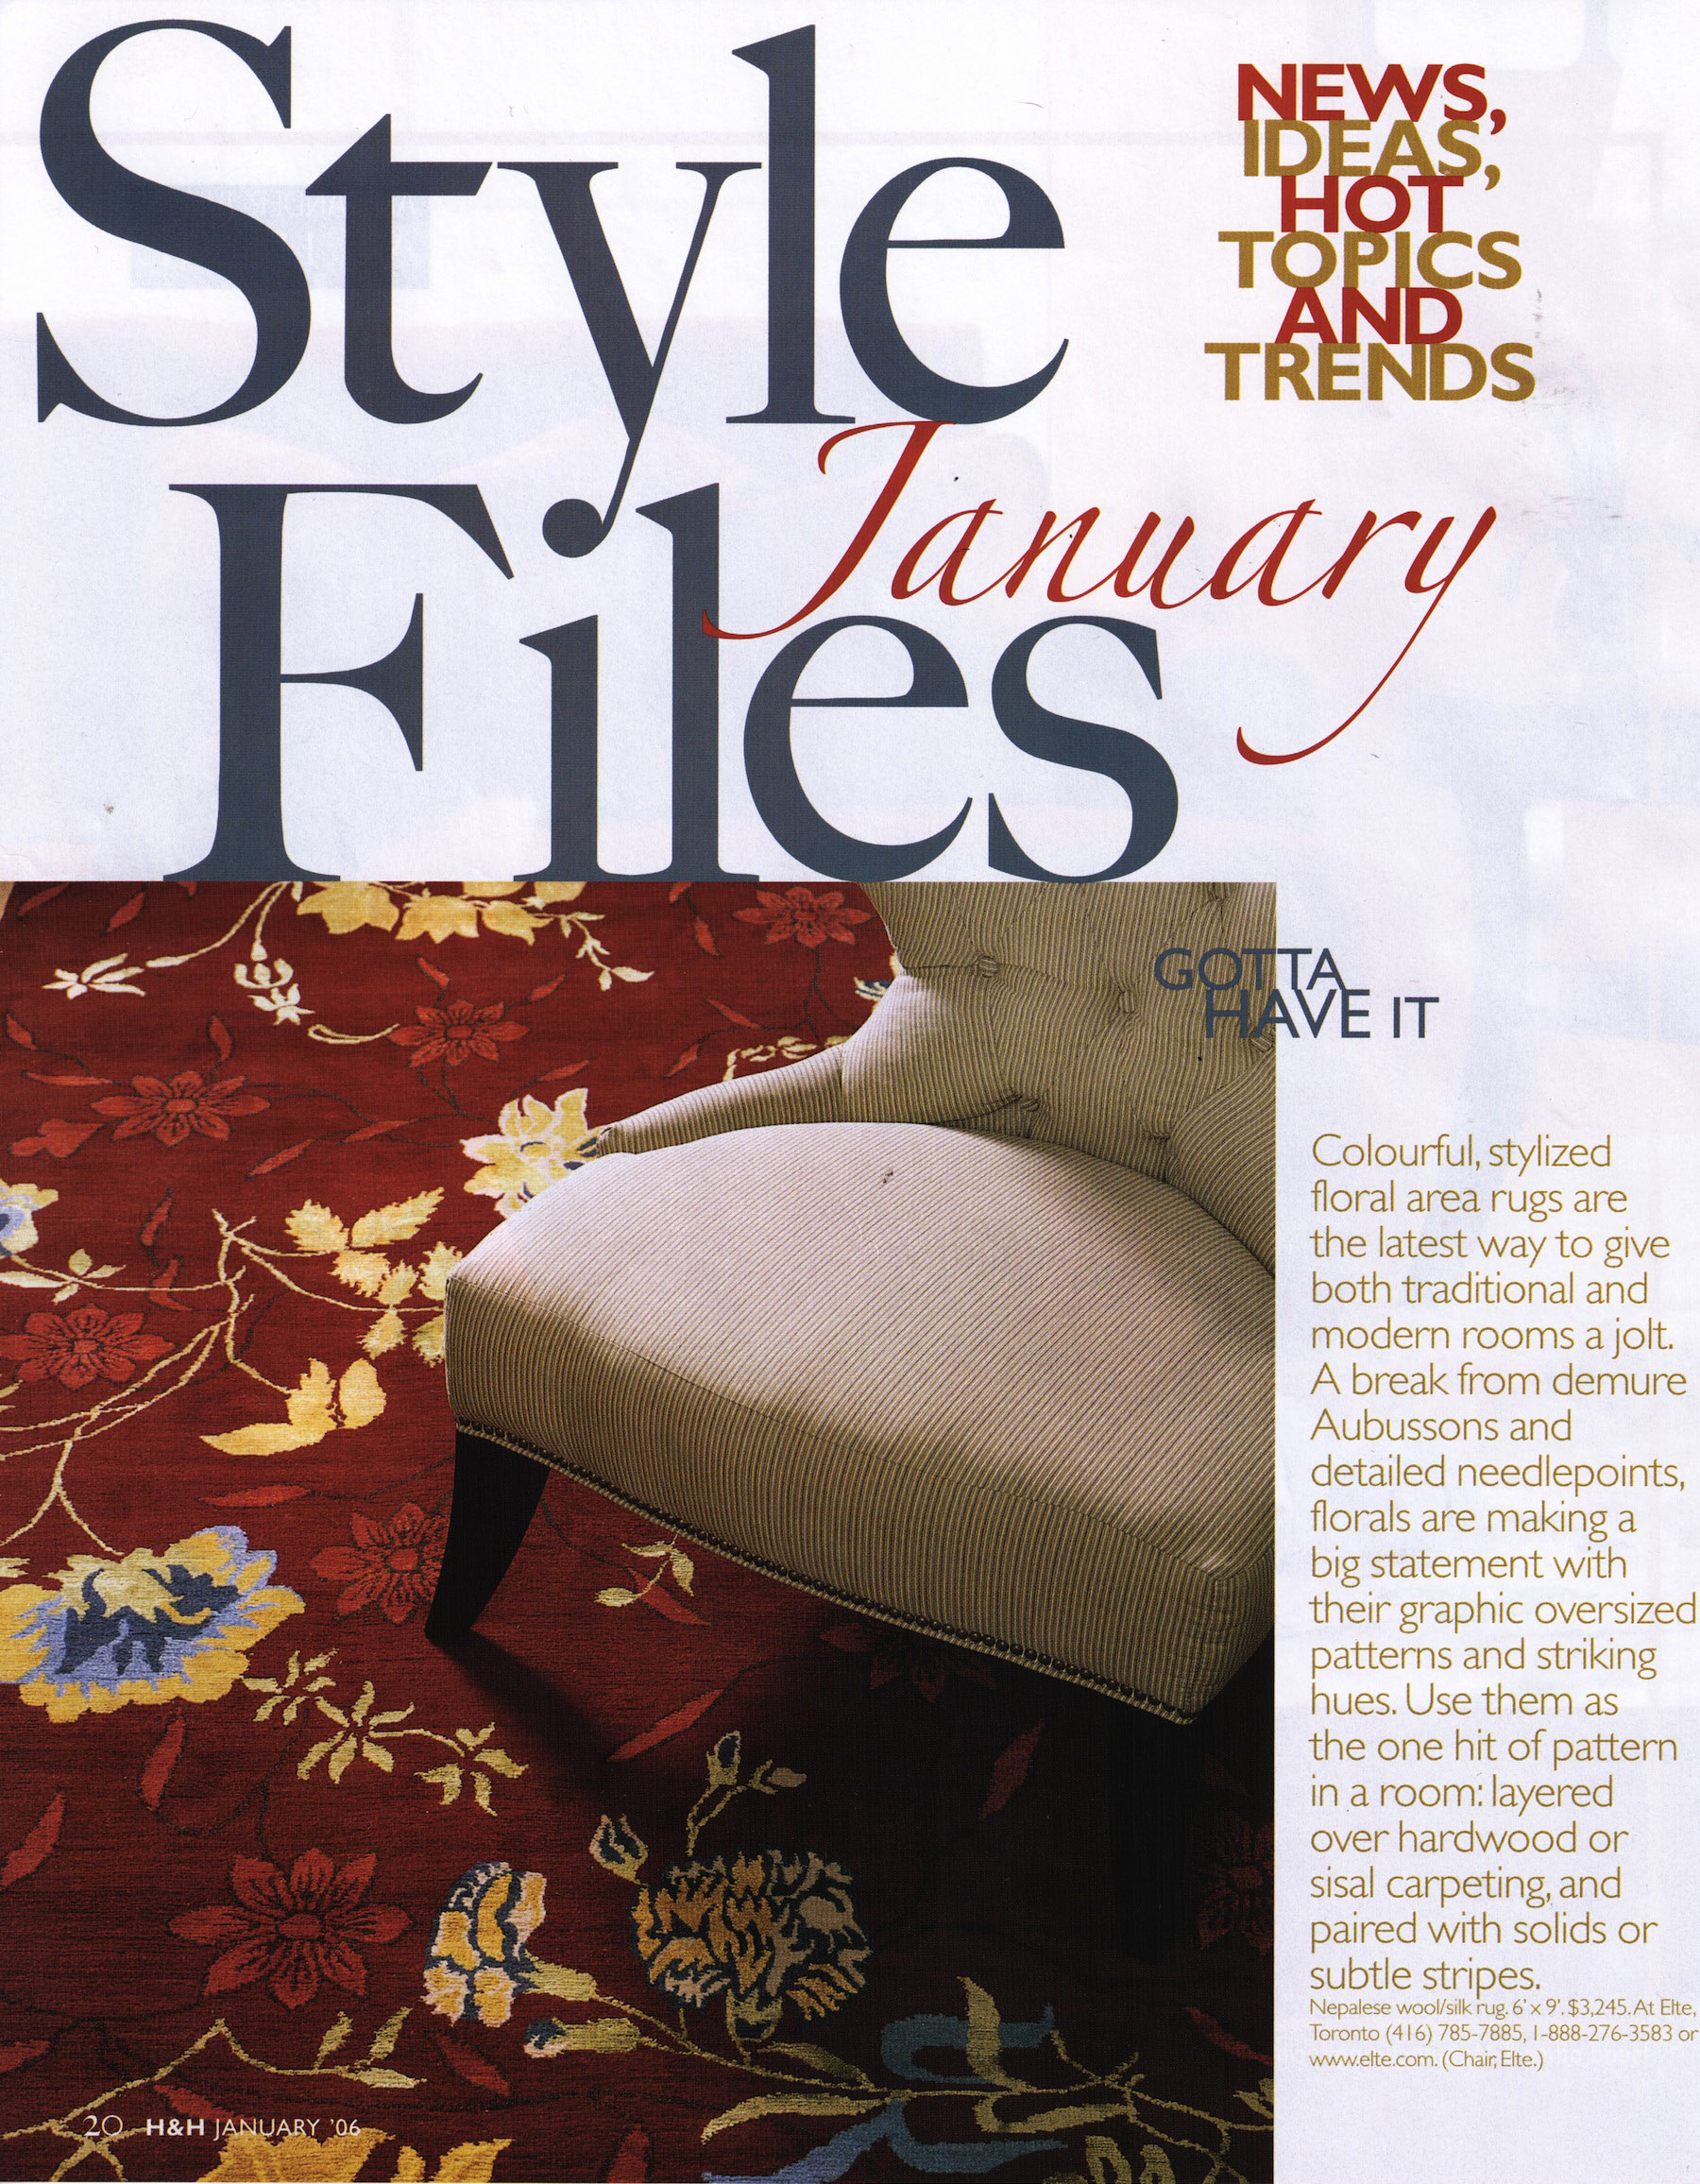 The 'Style Files' page from the January 2016 issue of House and Home magazine featuring a carpet by Elte. | Scanned image of the magazine by The Ruggist.